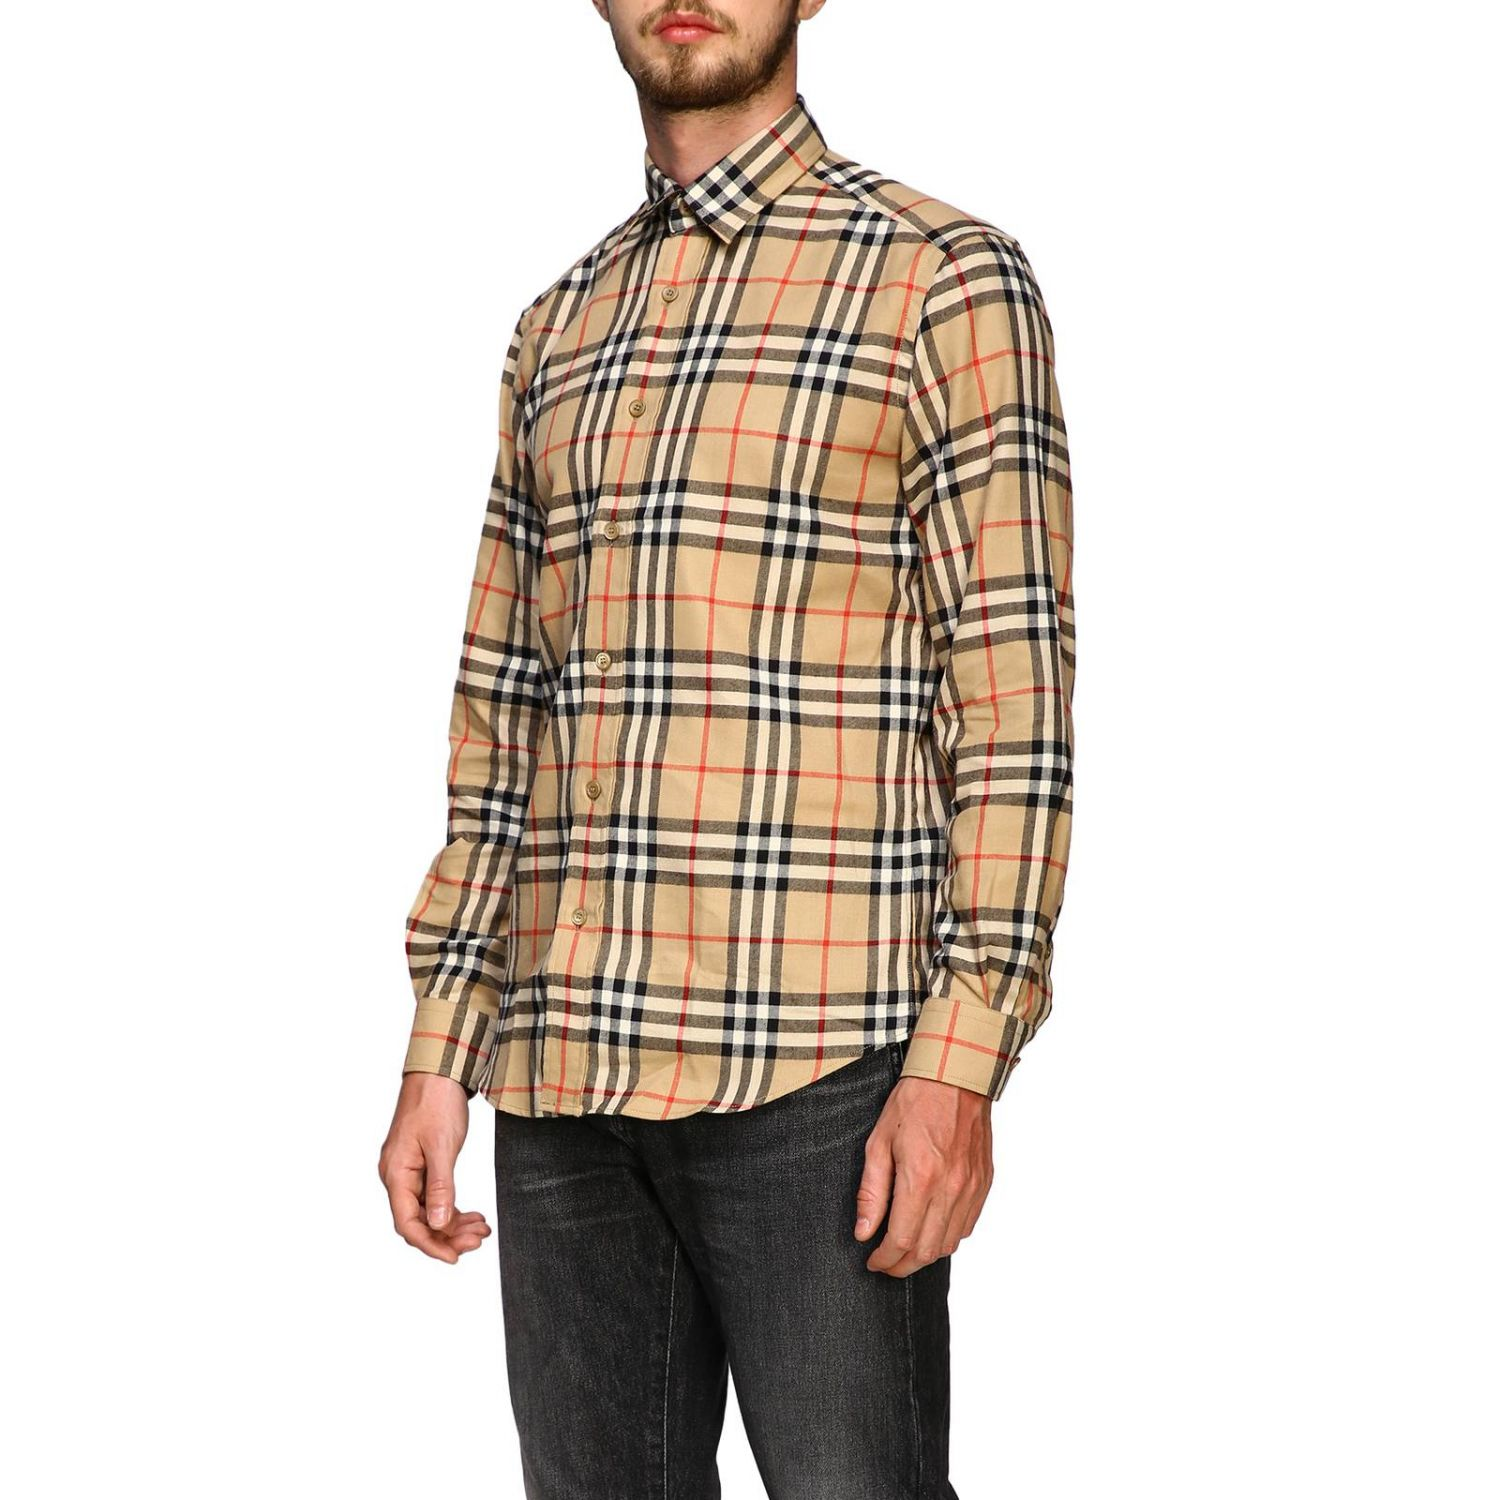 Chemise chambers Burberry motif check beige 4